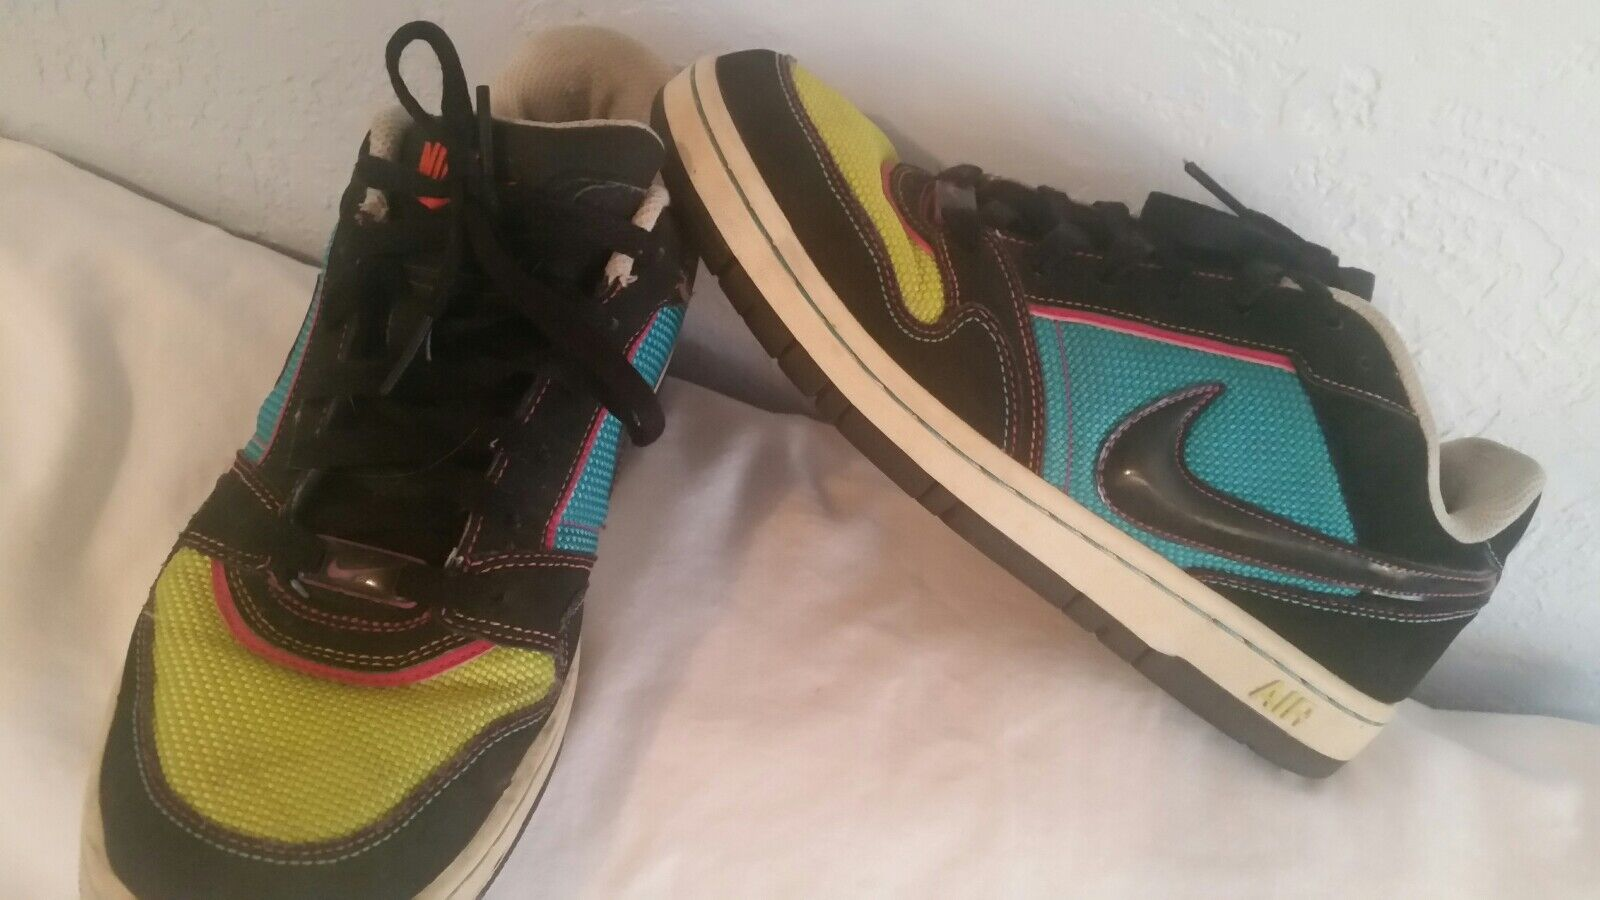 Men's/Women's Nike Air Ladies Shoes Size 9 Reputation first Highly At a lower price Highly first appreciated and widely trusted in and out 4e50bb